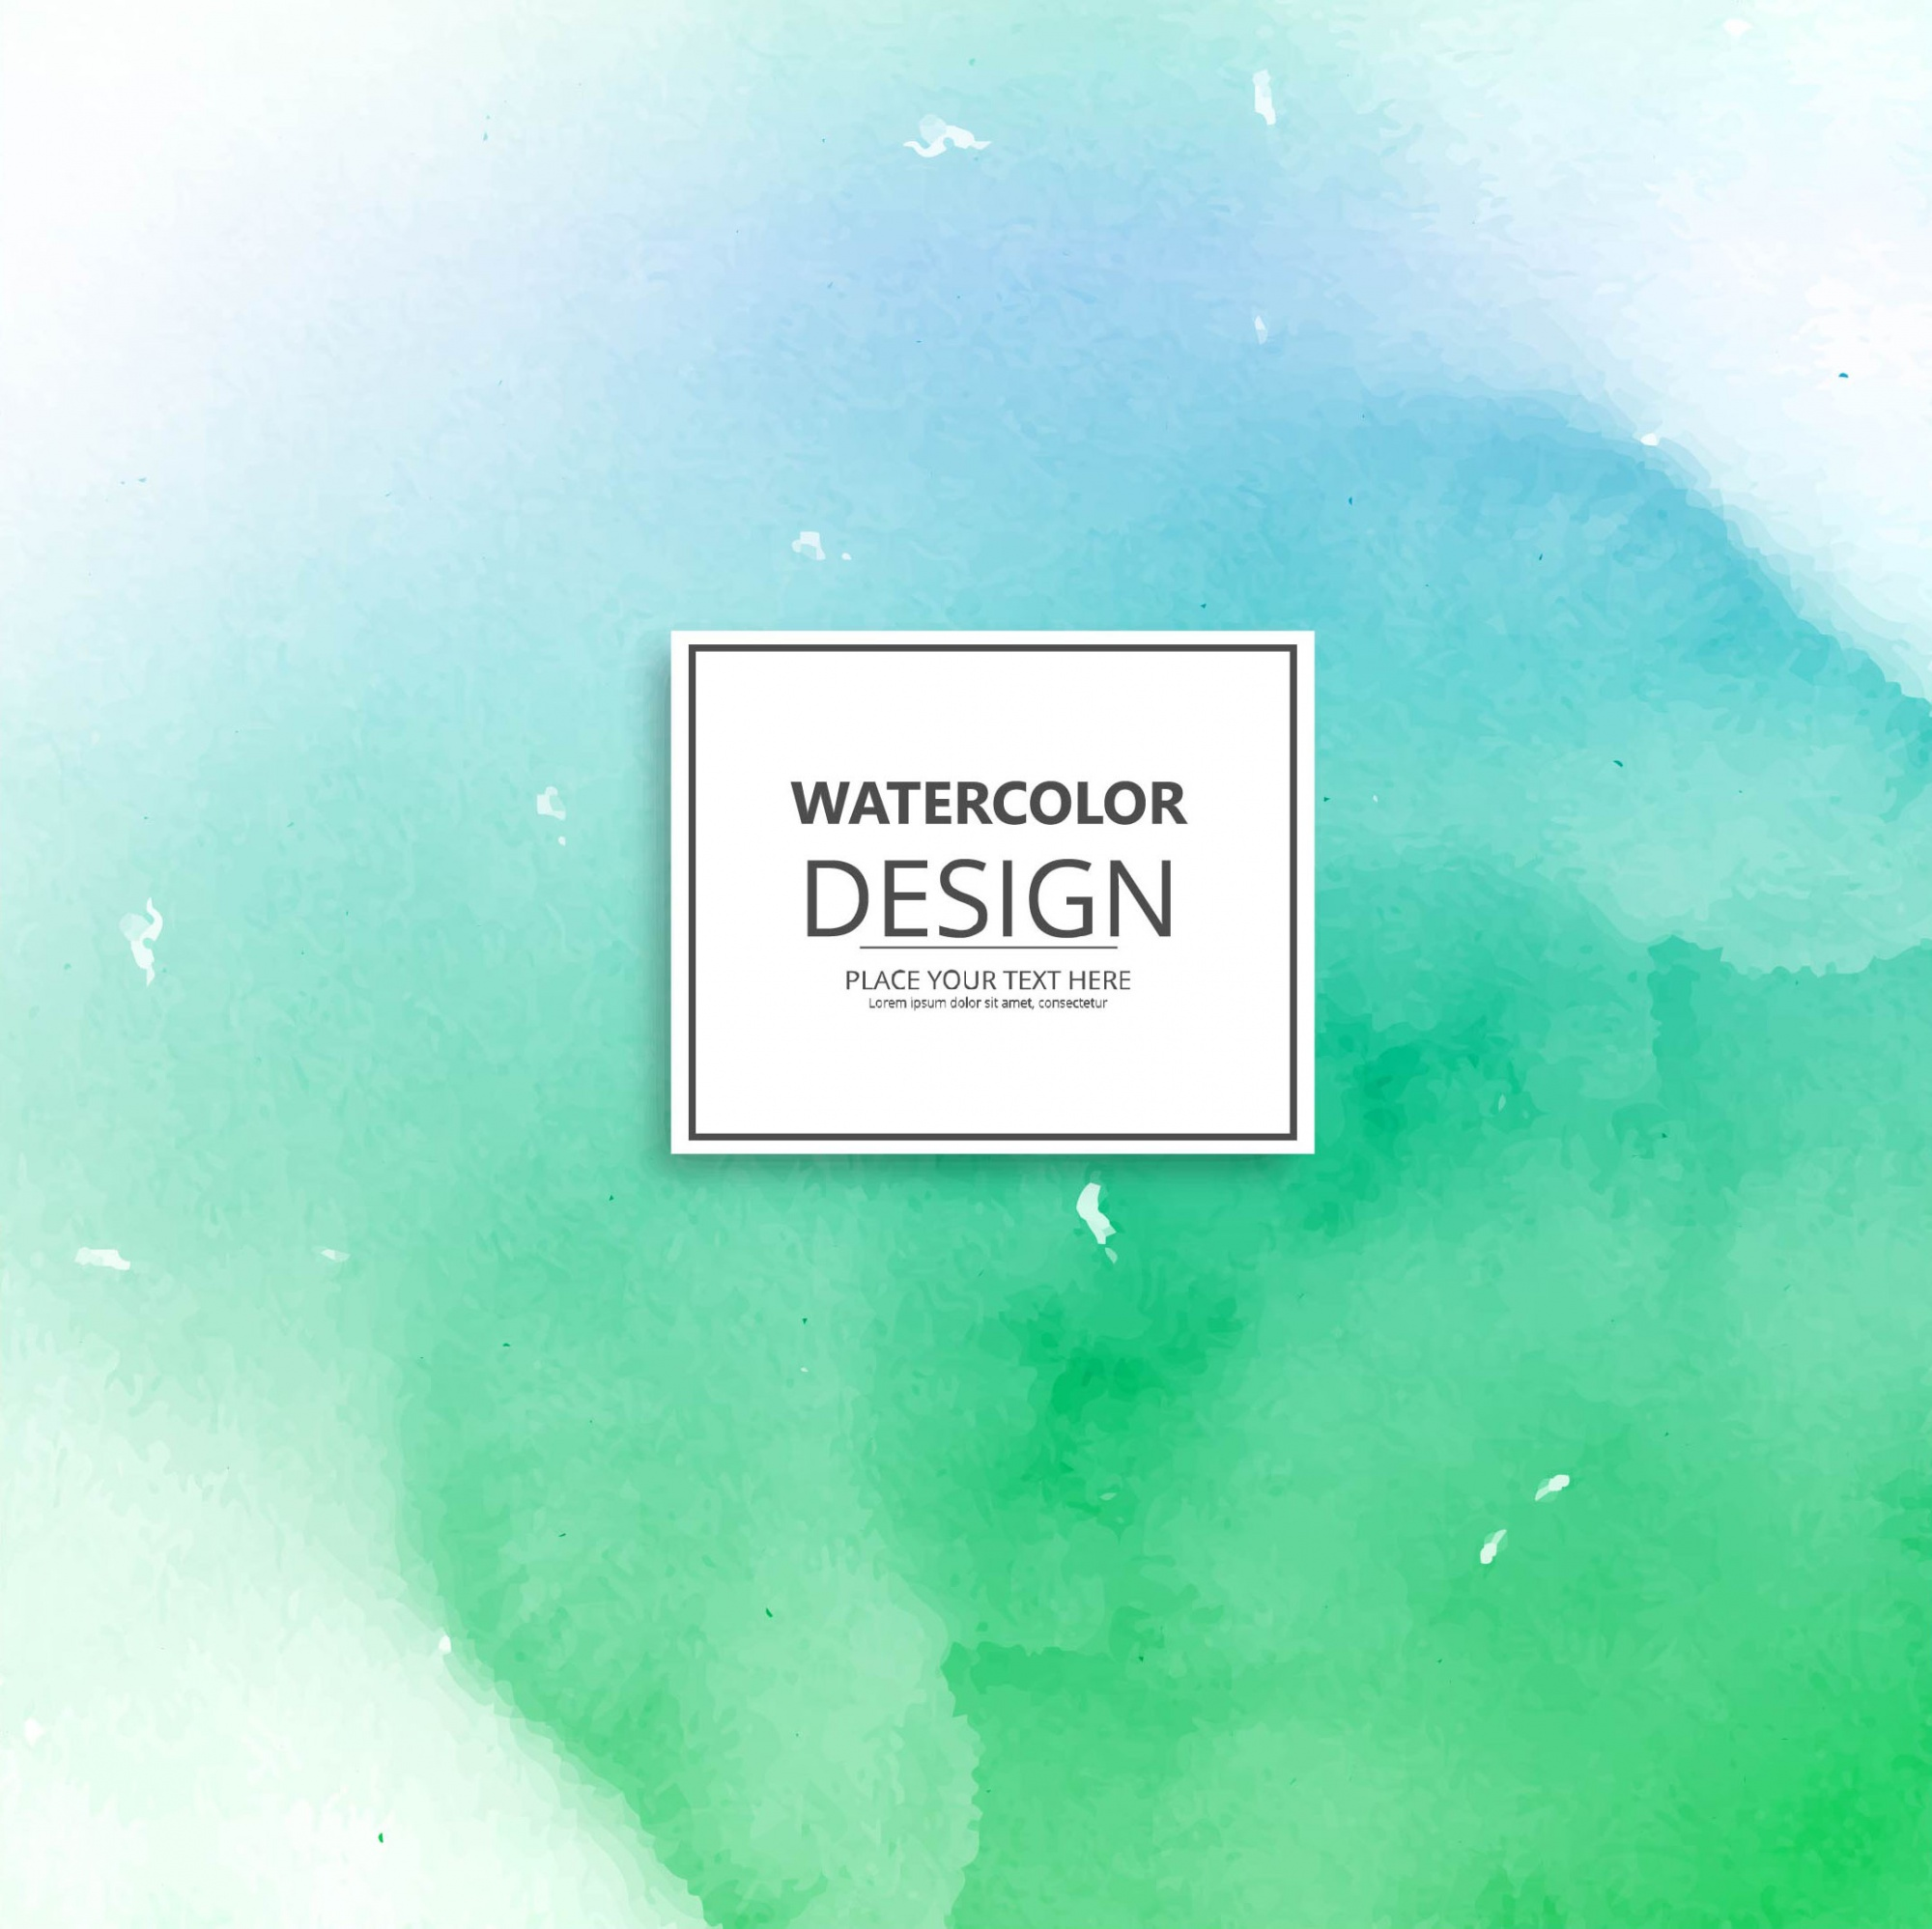 Watercolor background in green and blue tones